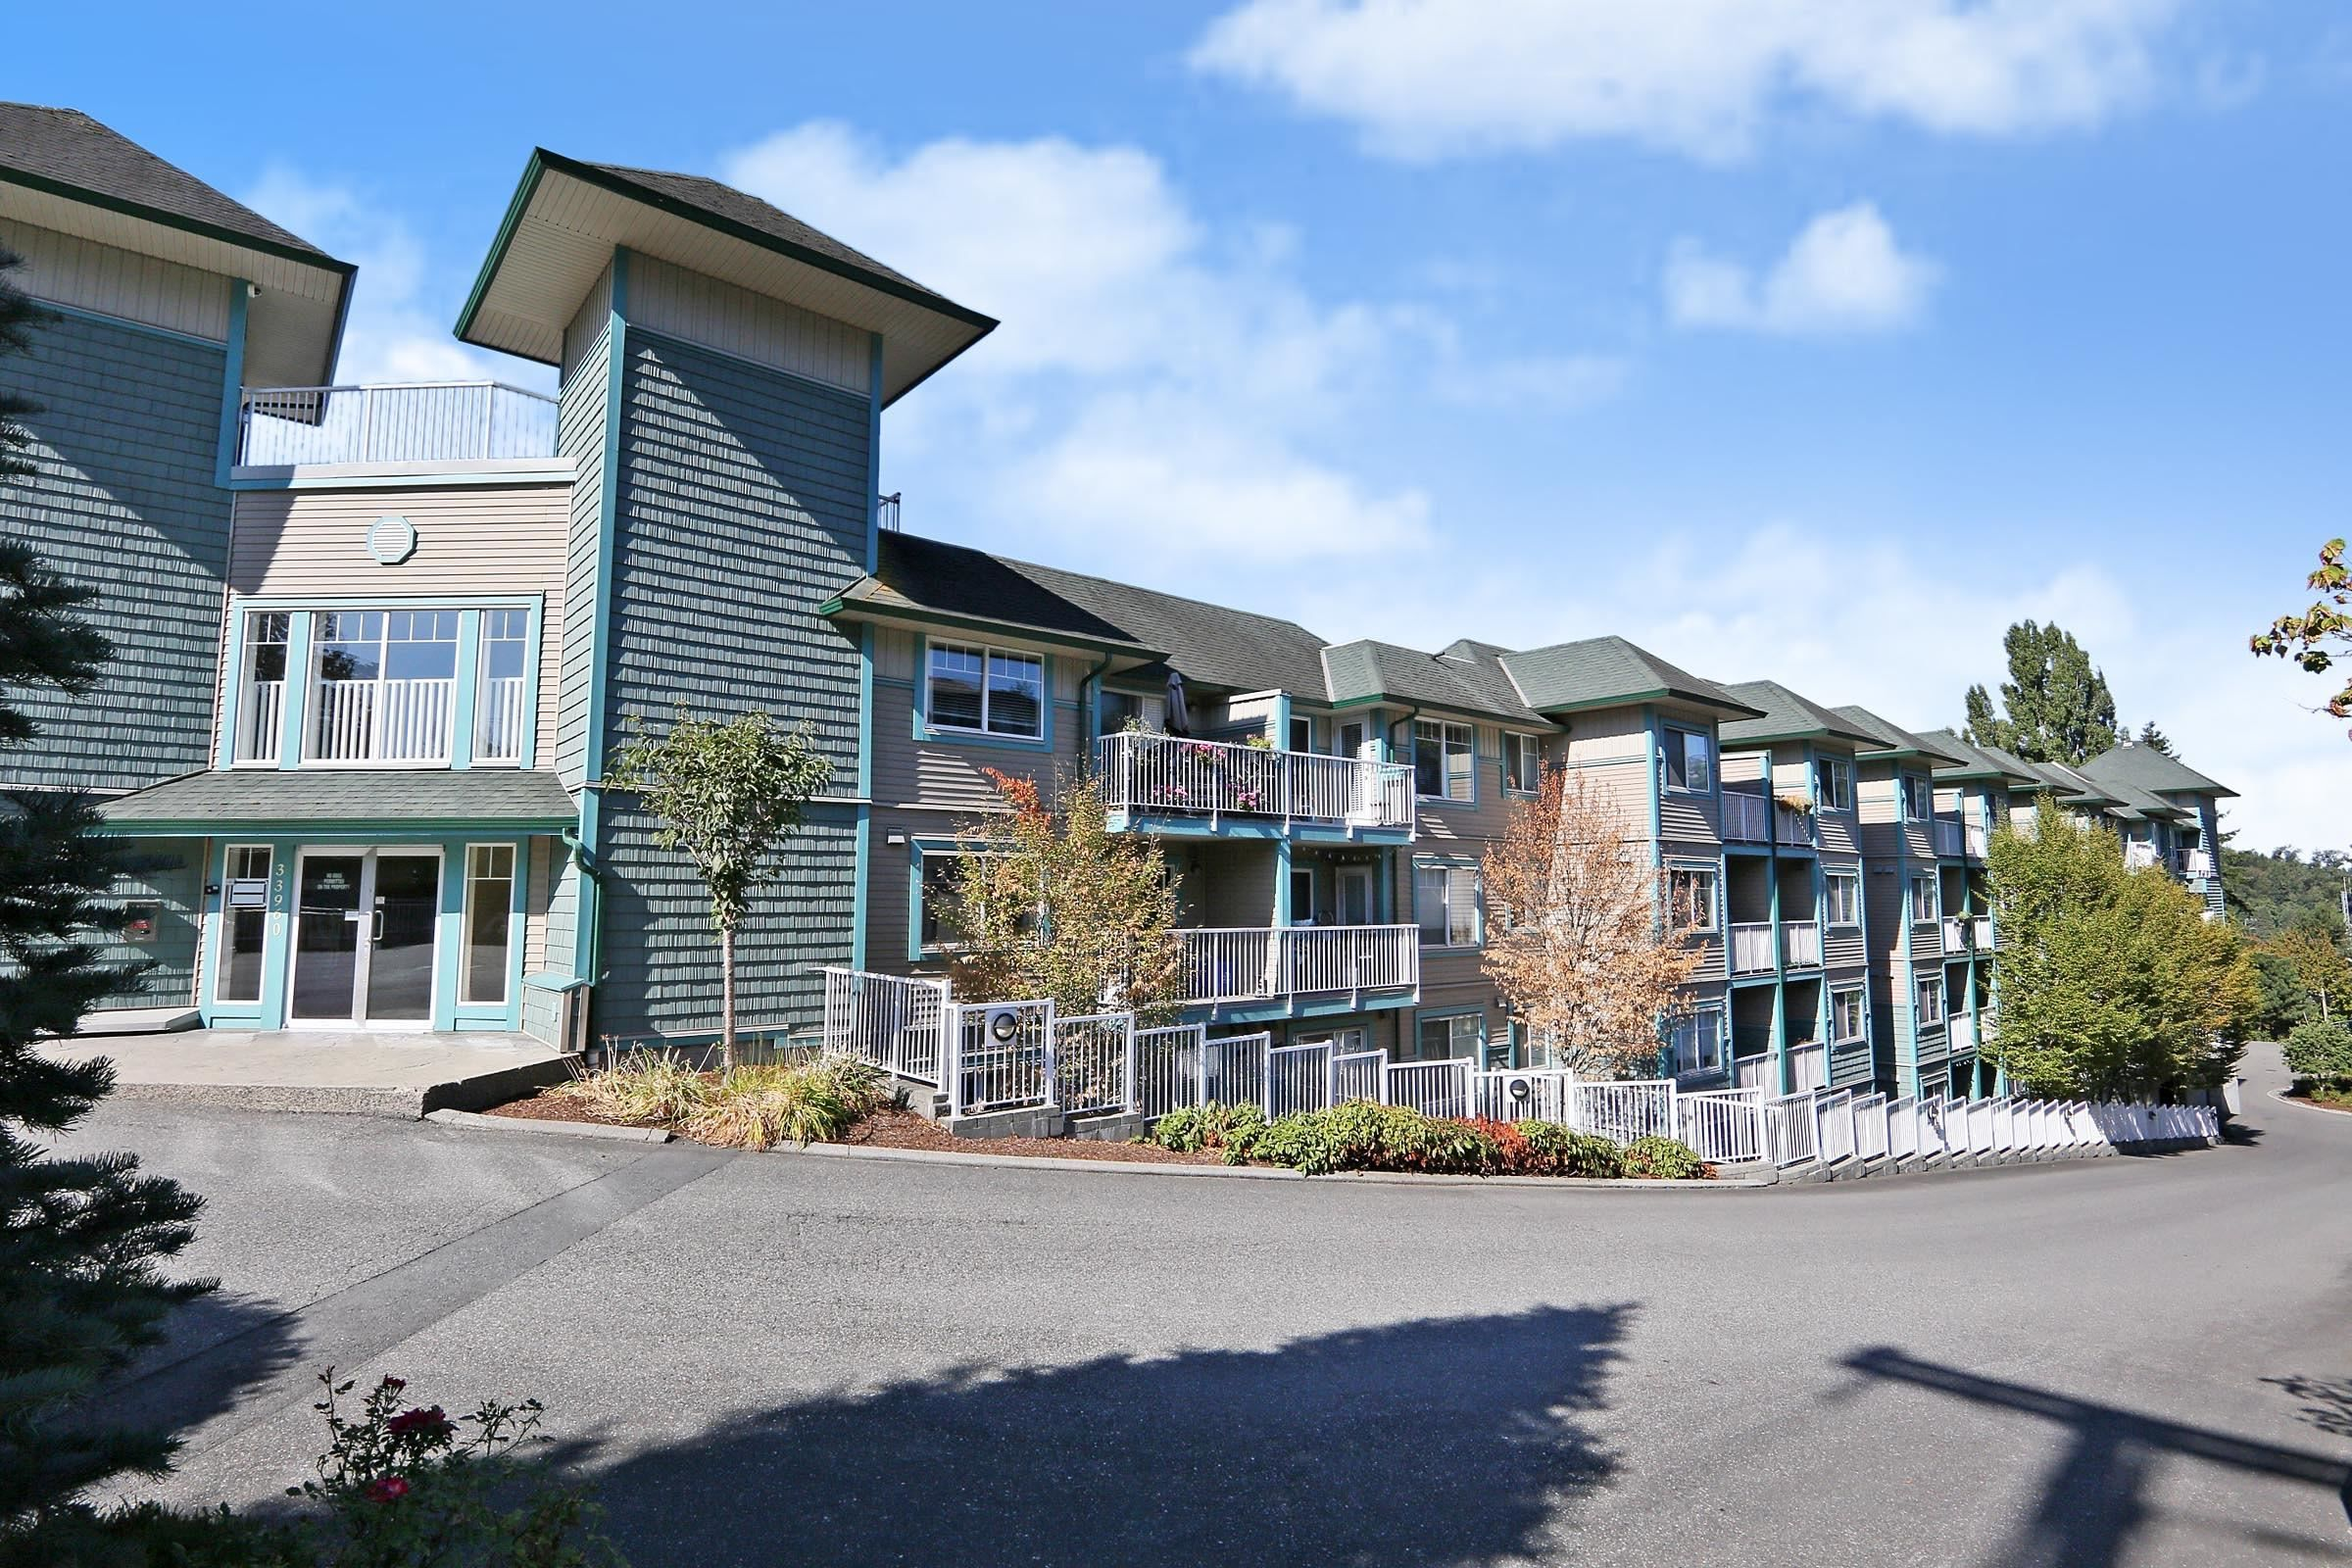 """Main Photo: 305 33960 OLD YALE Road in Abbotsford: Central Abbotsford Condo for sale in """"Old Yale Heights"""" : MLS®# R2614204"""